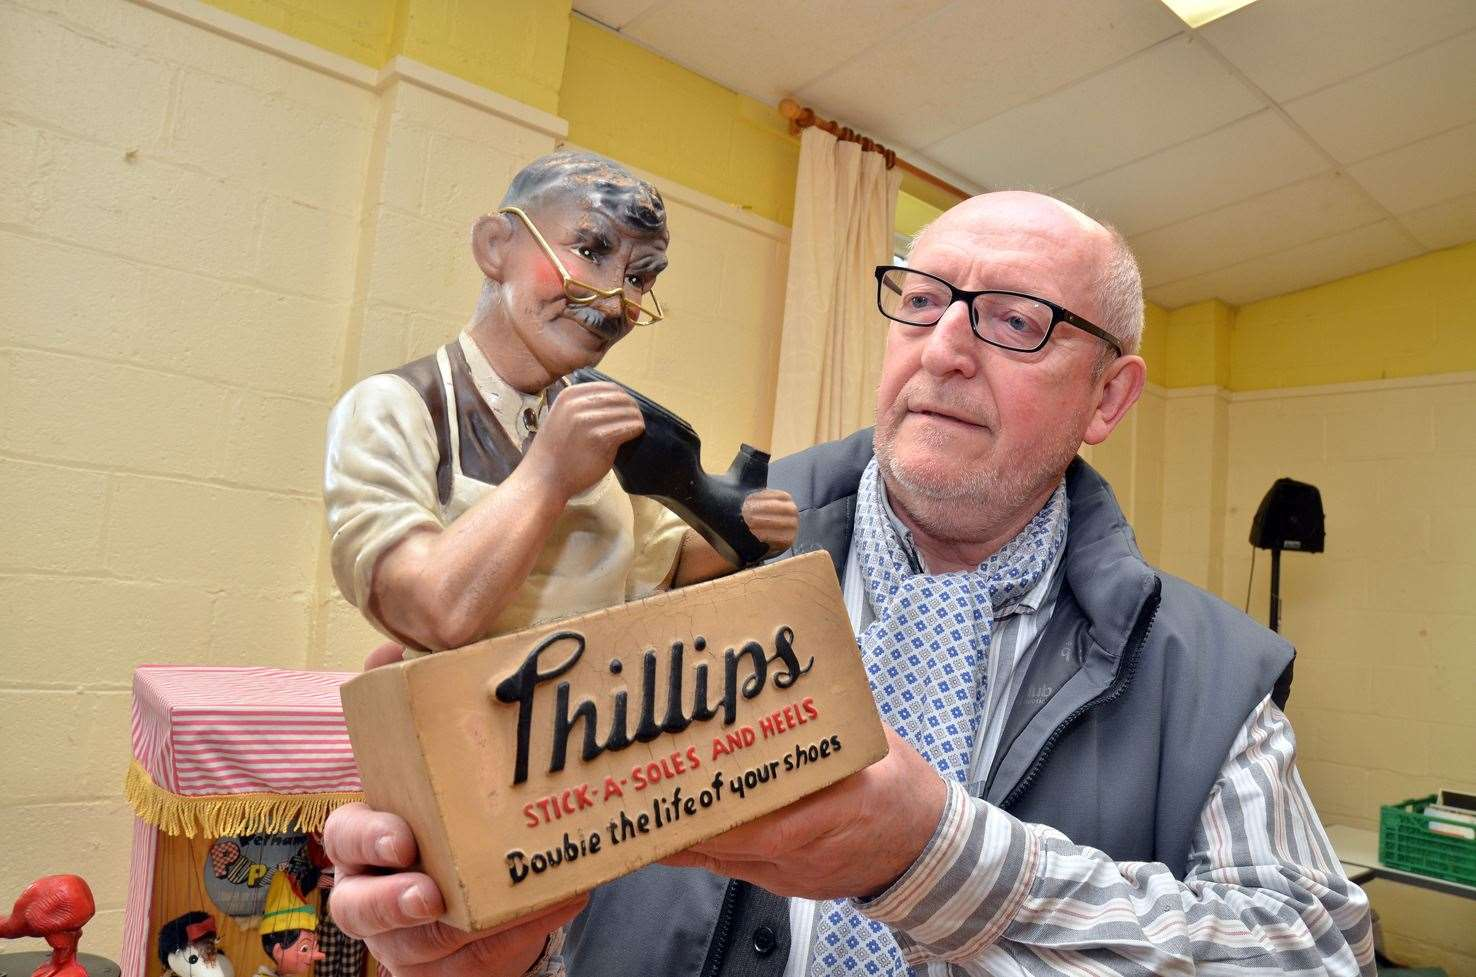 Speaker Keith Talbot talking about vintage shop advertising display figures at the meeting on Thursday. (8298394)